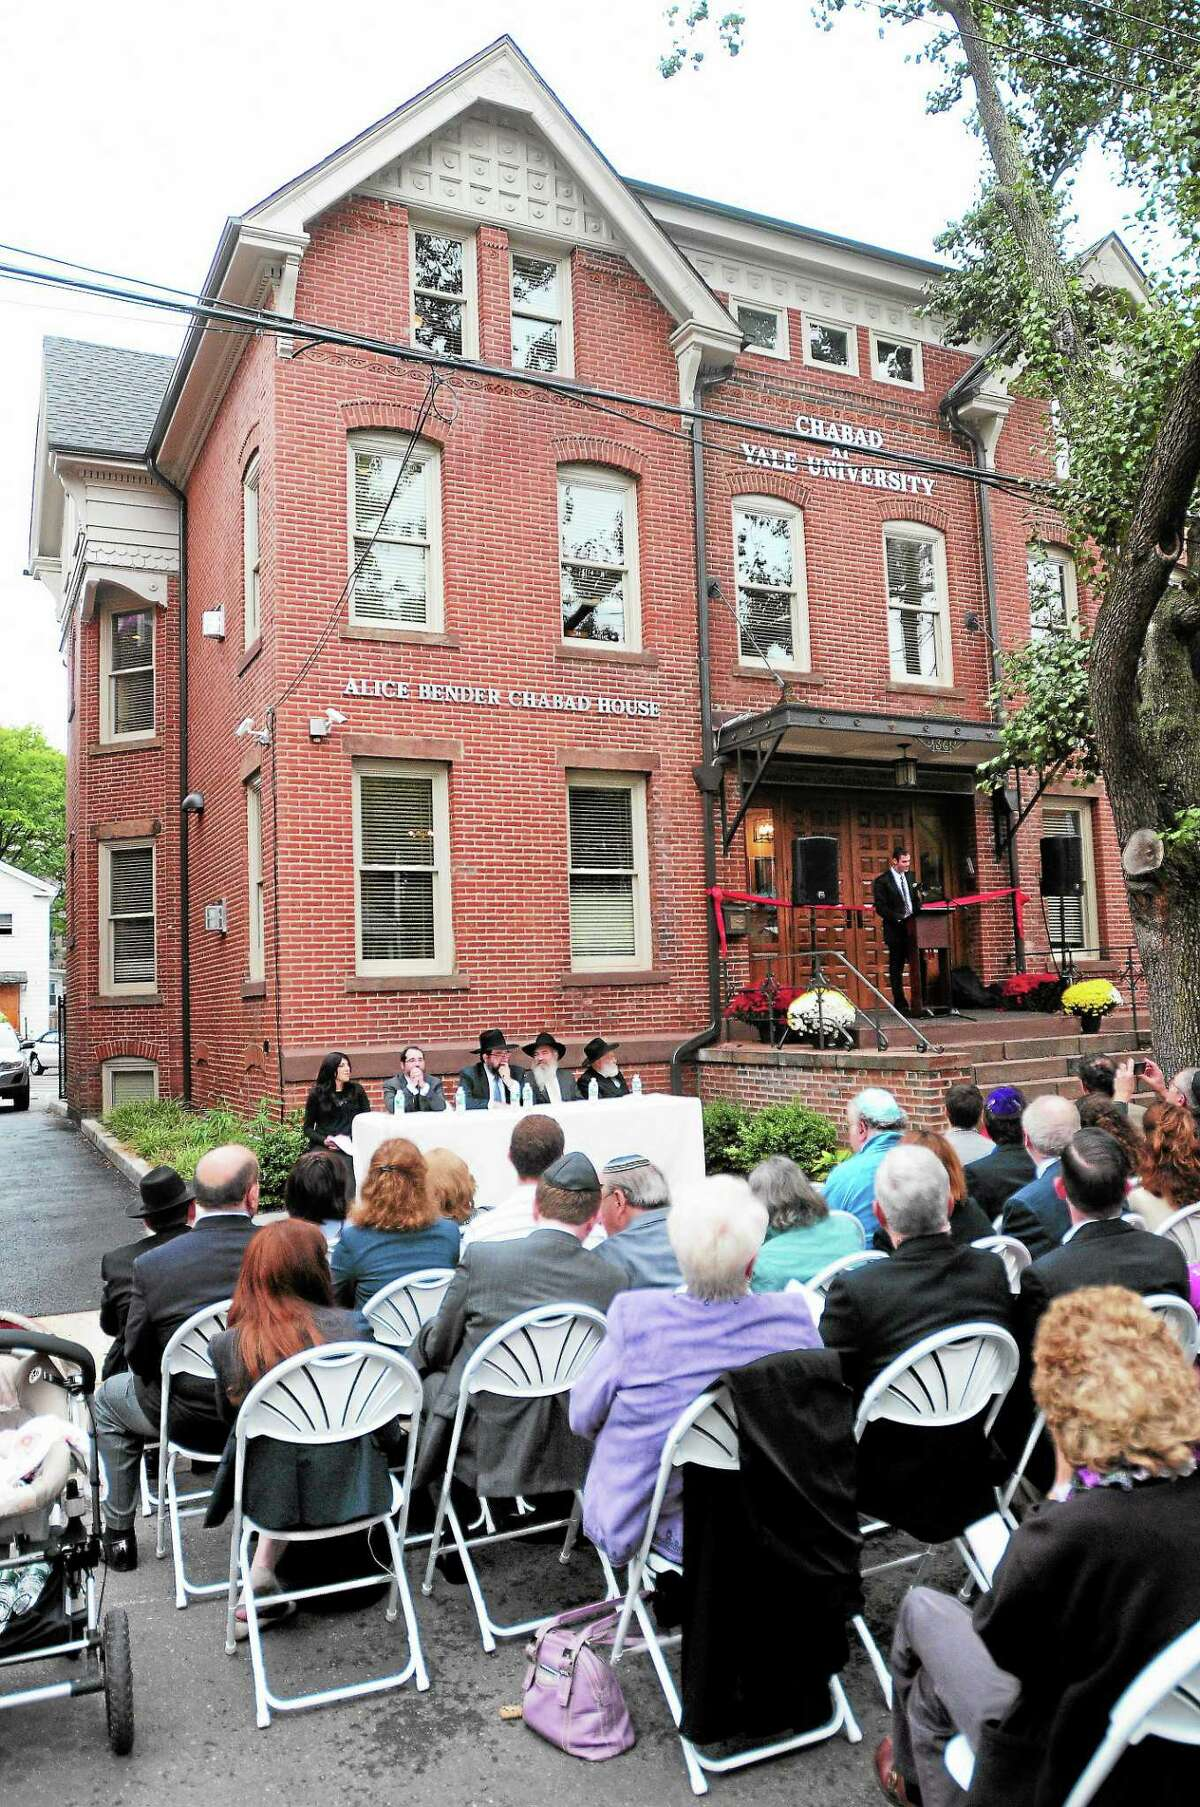 The Chabad House at Yale University is dedicated on Lynwood Place in New Haven in 2013.